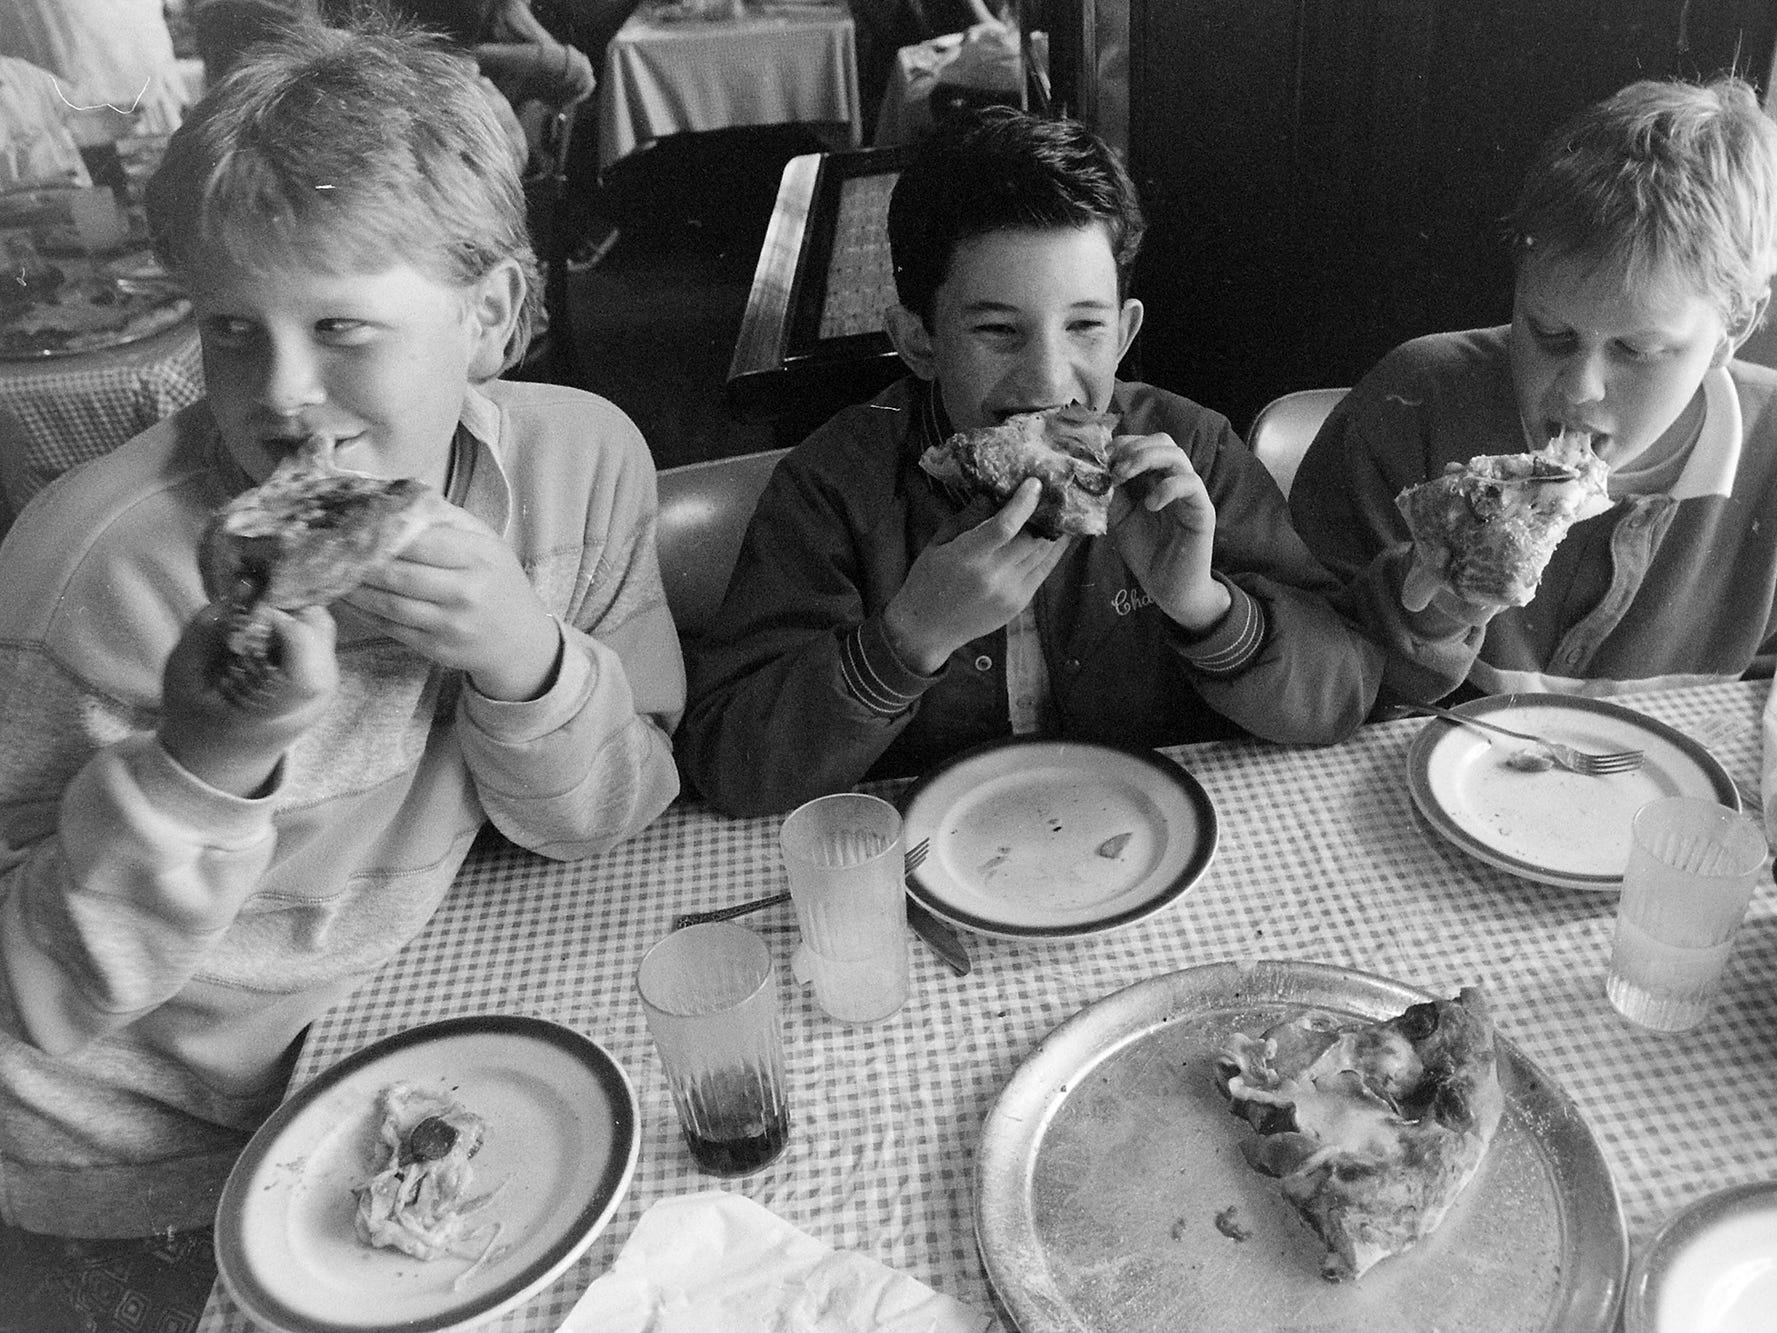 06/07/88Pizza Party